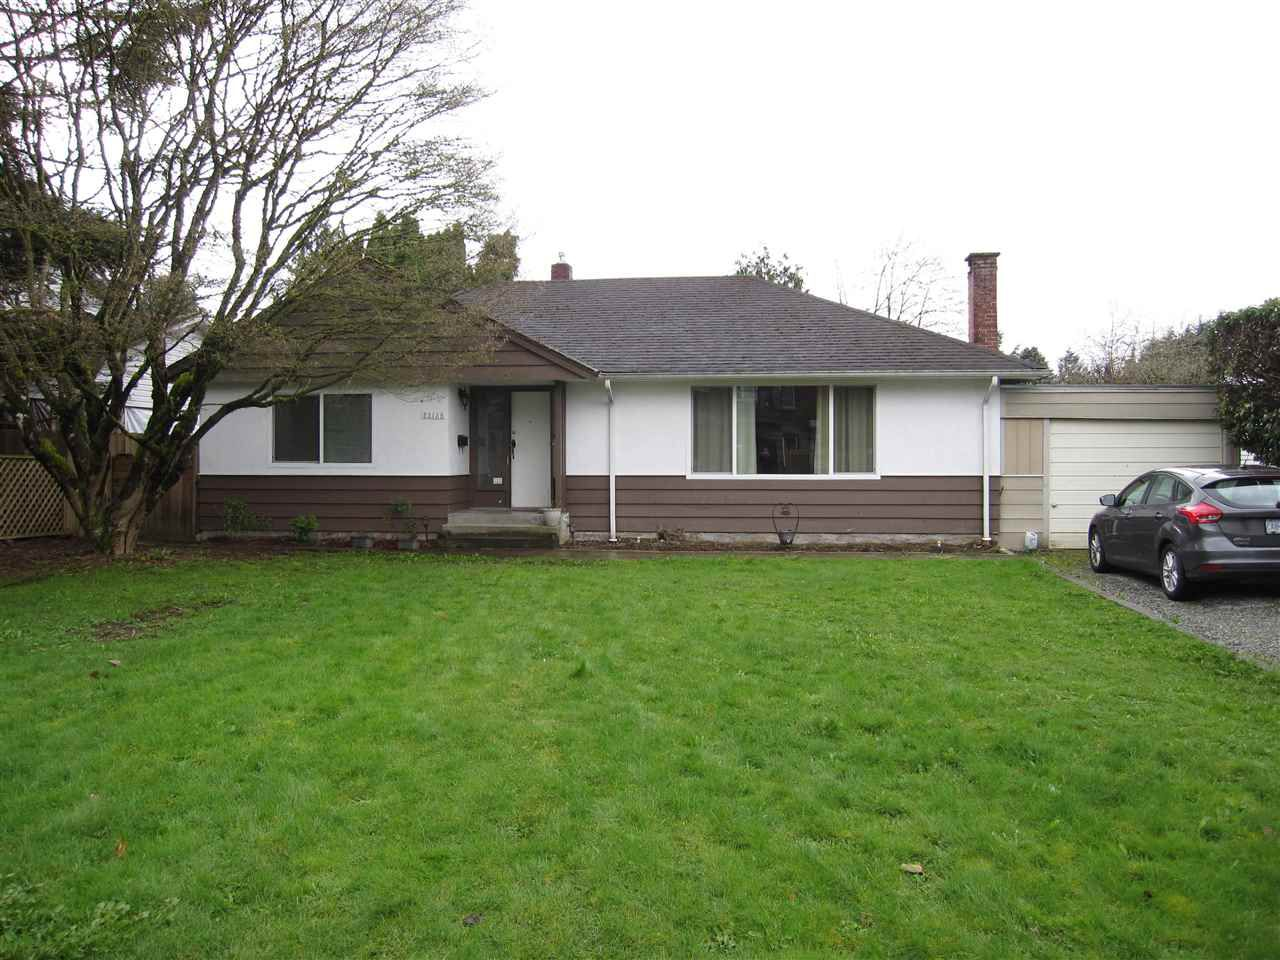 Main Photo: 22138 119 Avenue in Maple Ridge: West Central House for sale : MLS®# R2158040